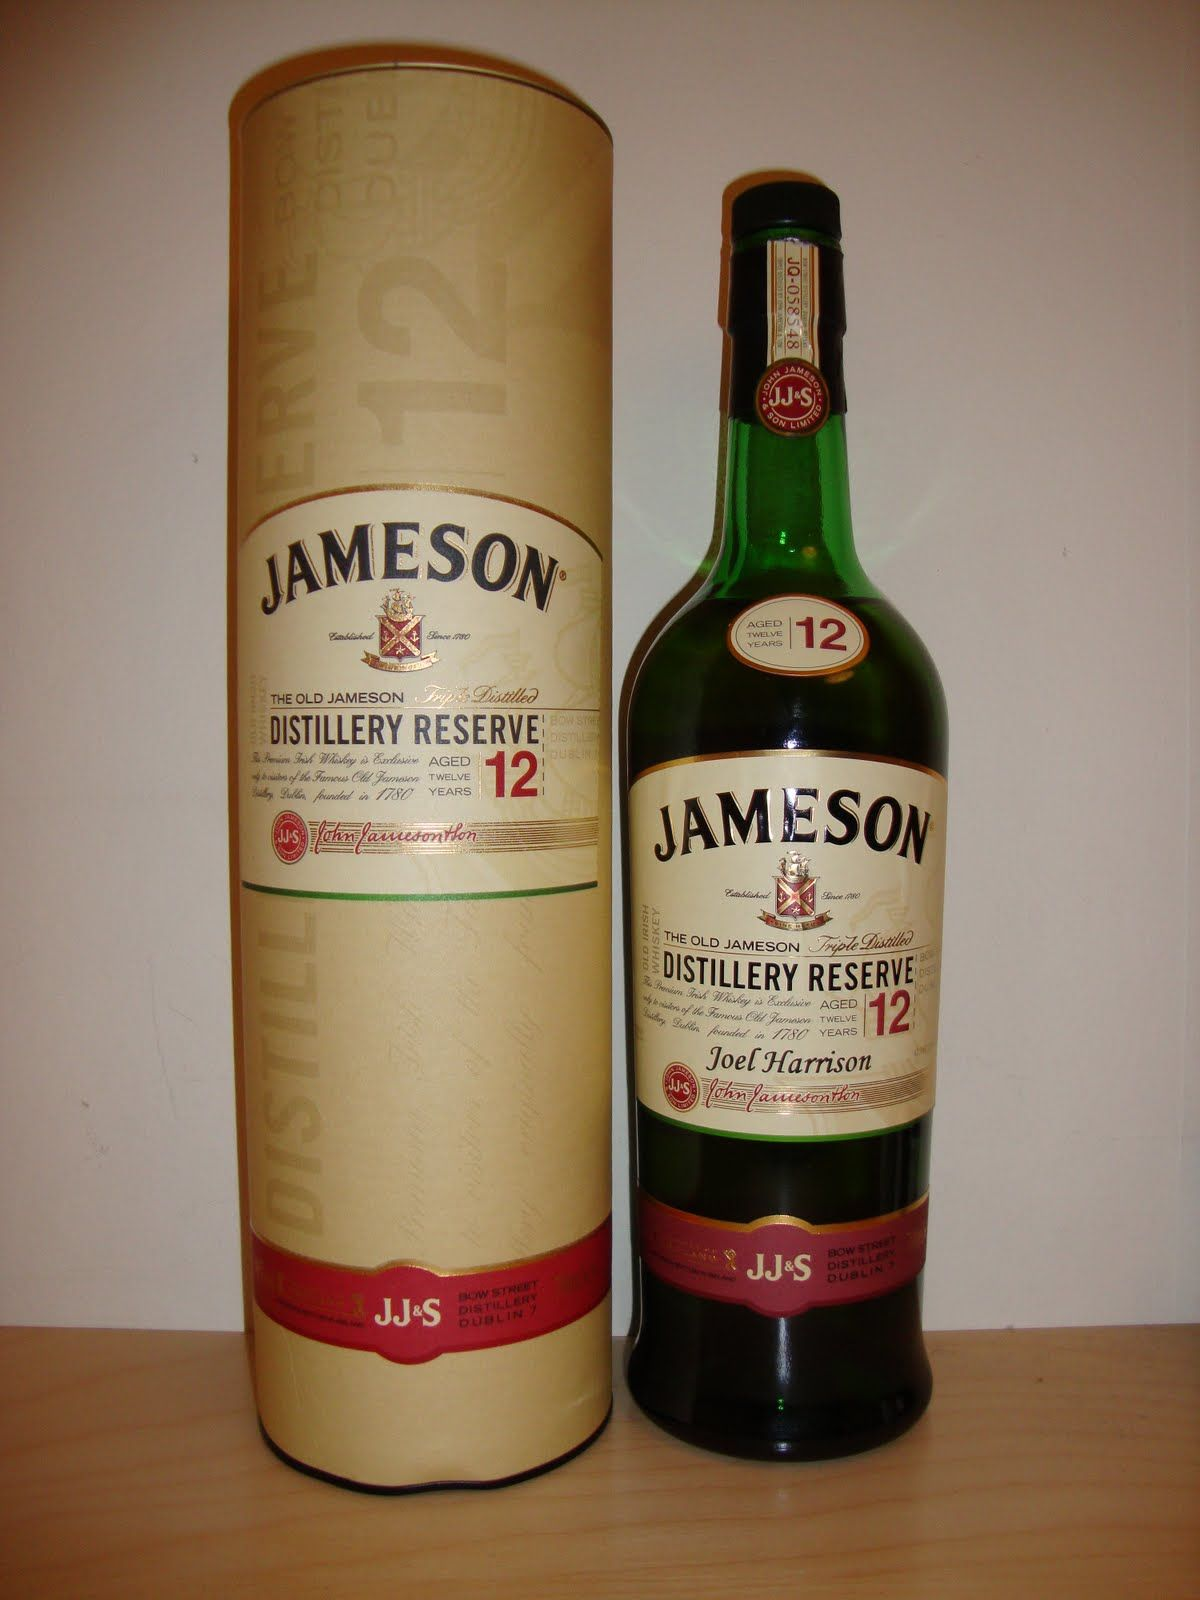 Jameson Distillery Reserve Jameson Irish Whiskey Jameson Distillery Irish Whiskey